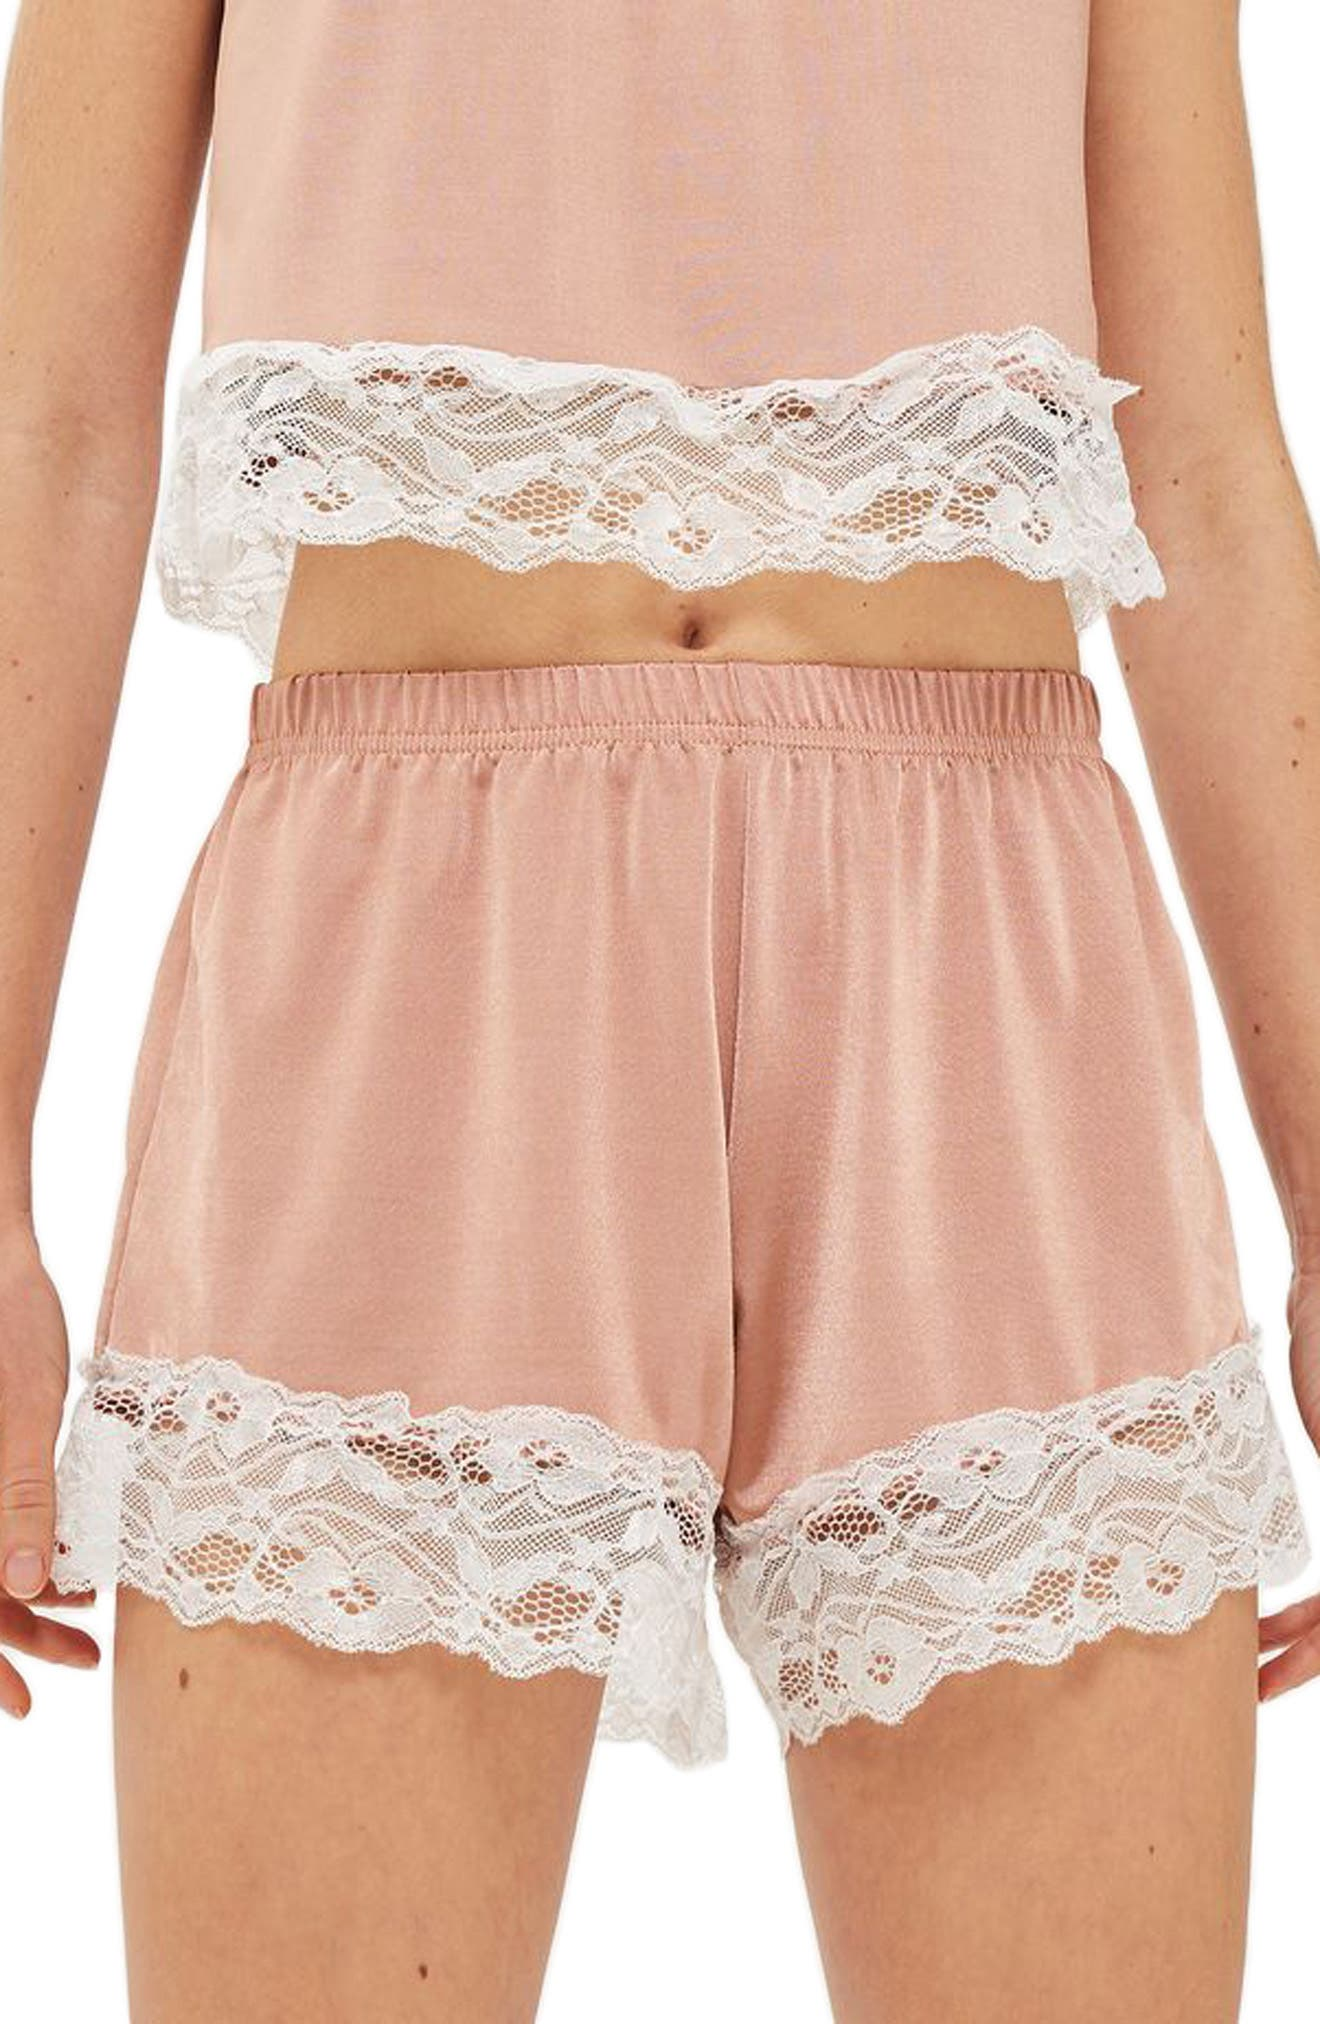 Satin & Lace Pajama Shorts,                         Main,                         color, Nude